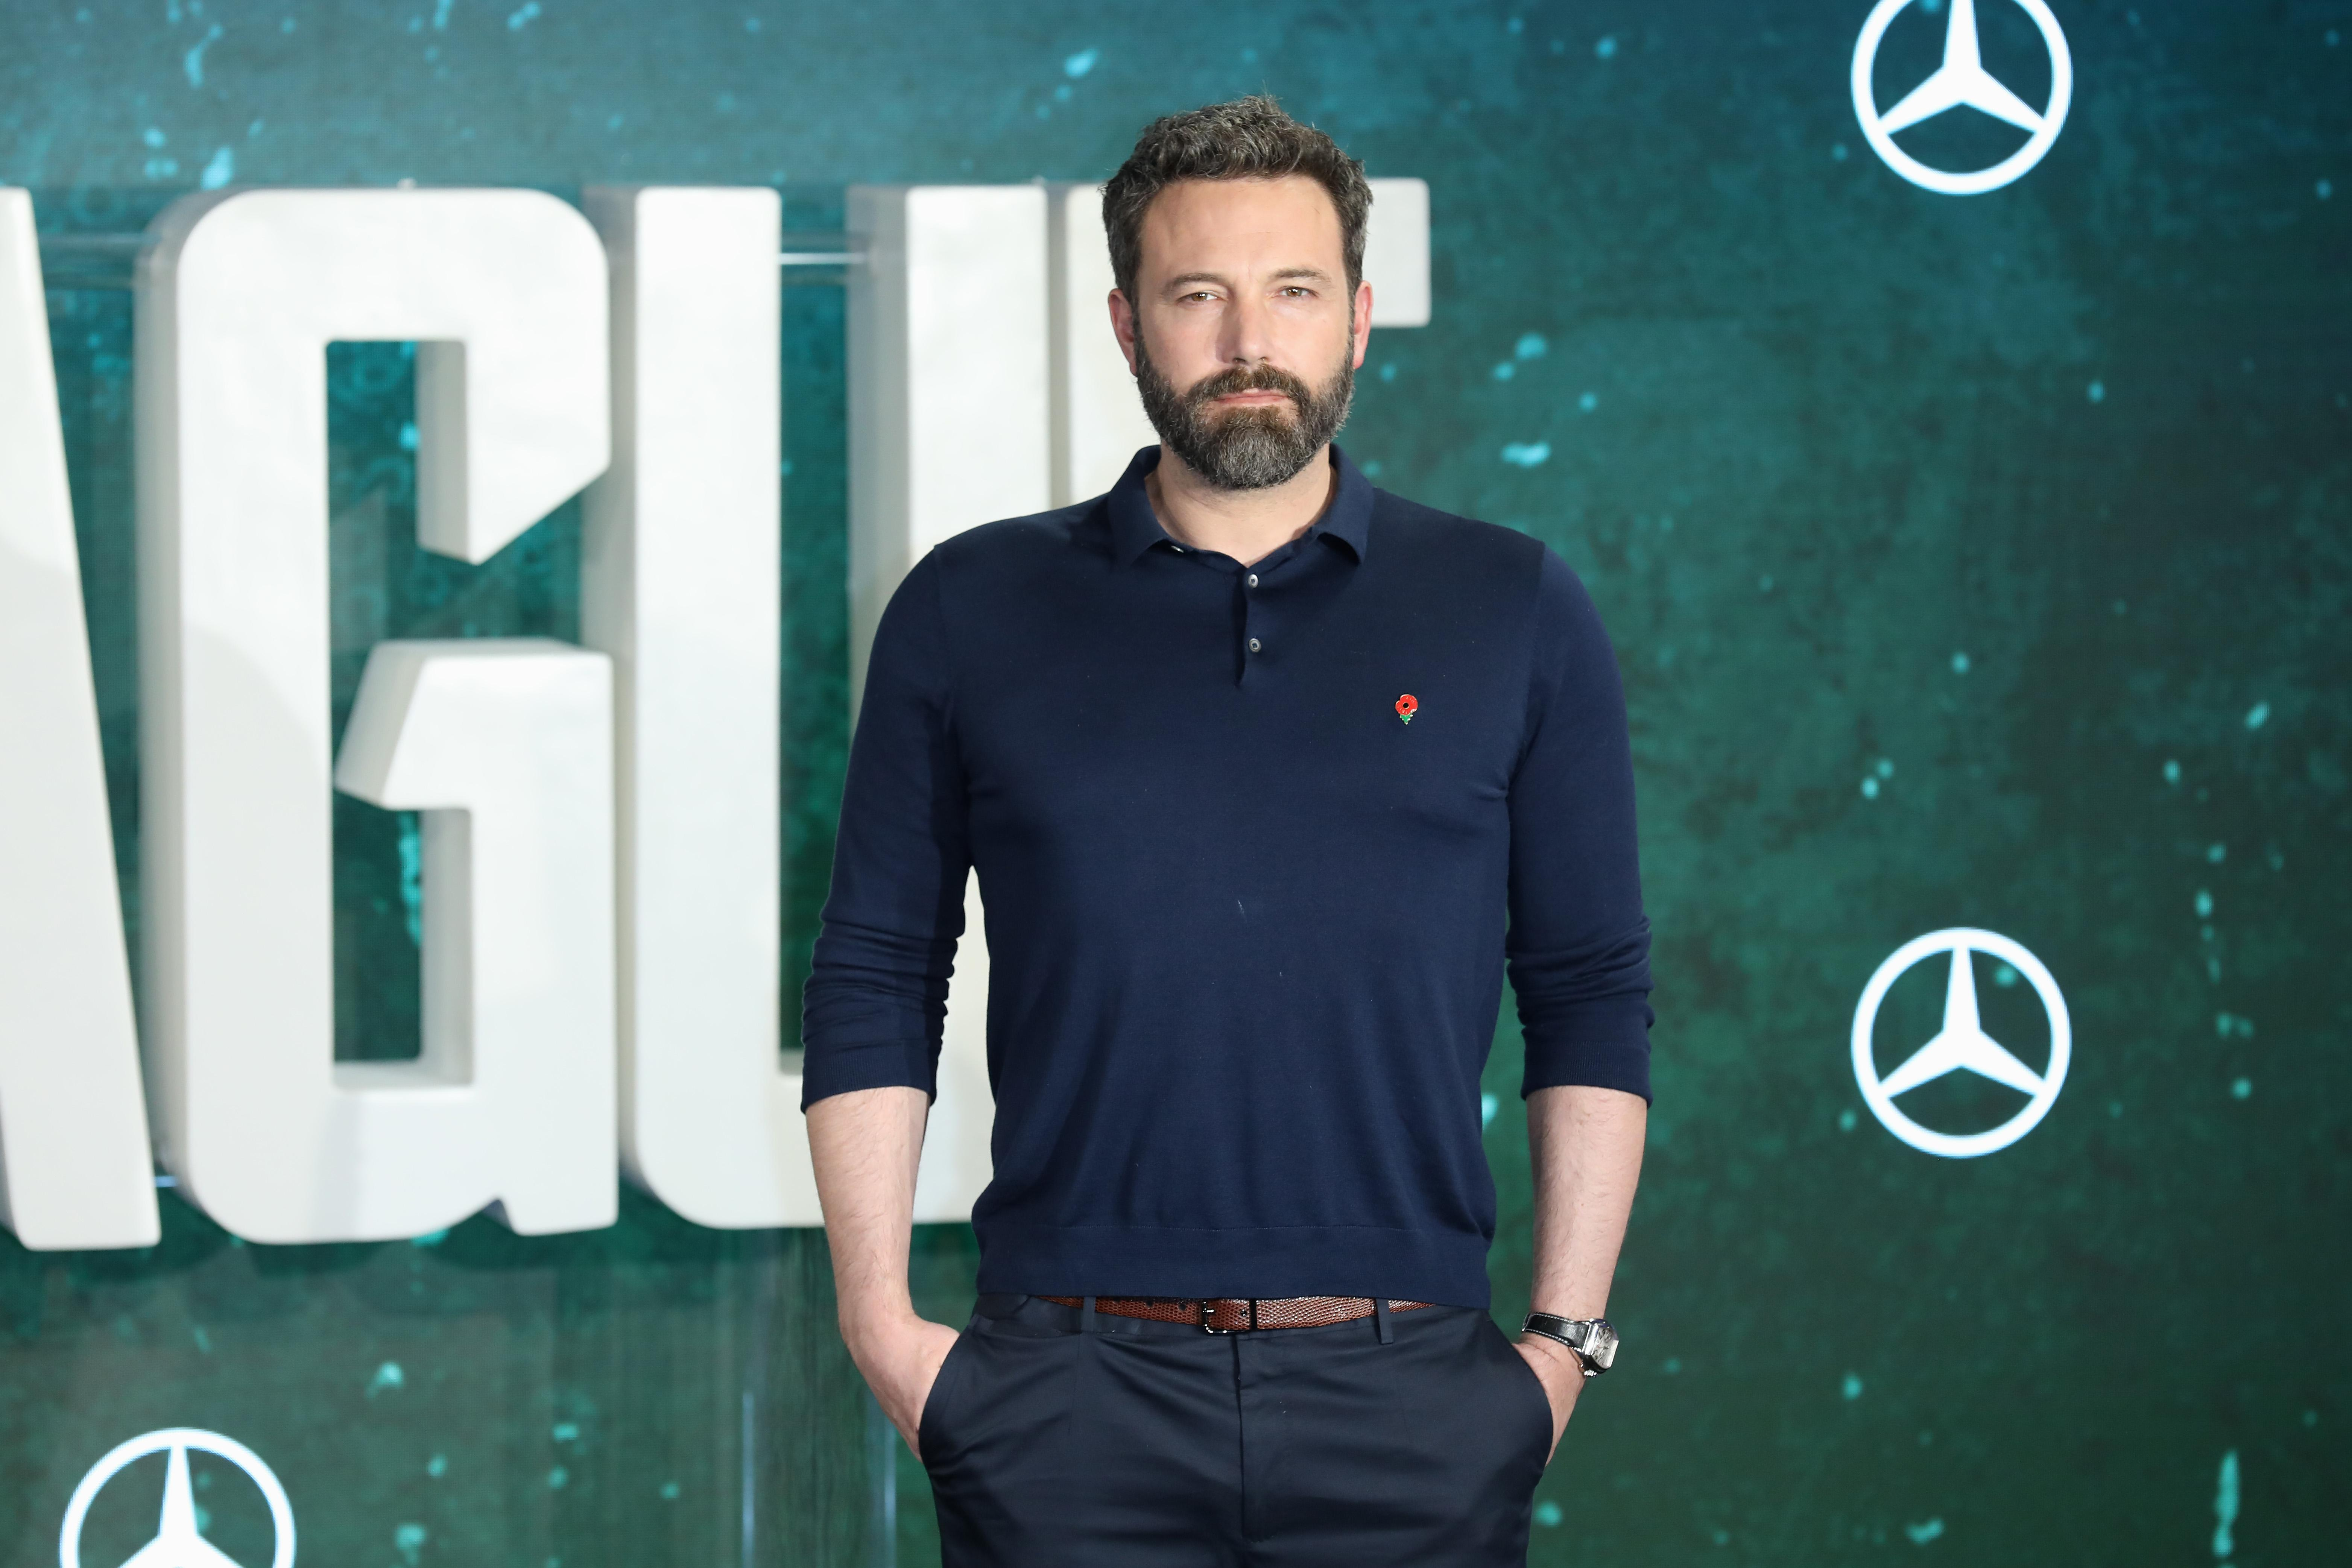 Ben Affleck breaks silence on his 'garish' back tattoo